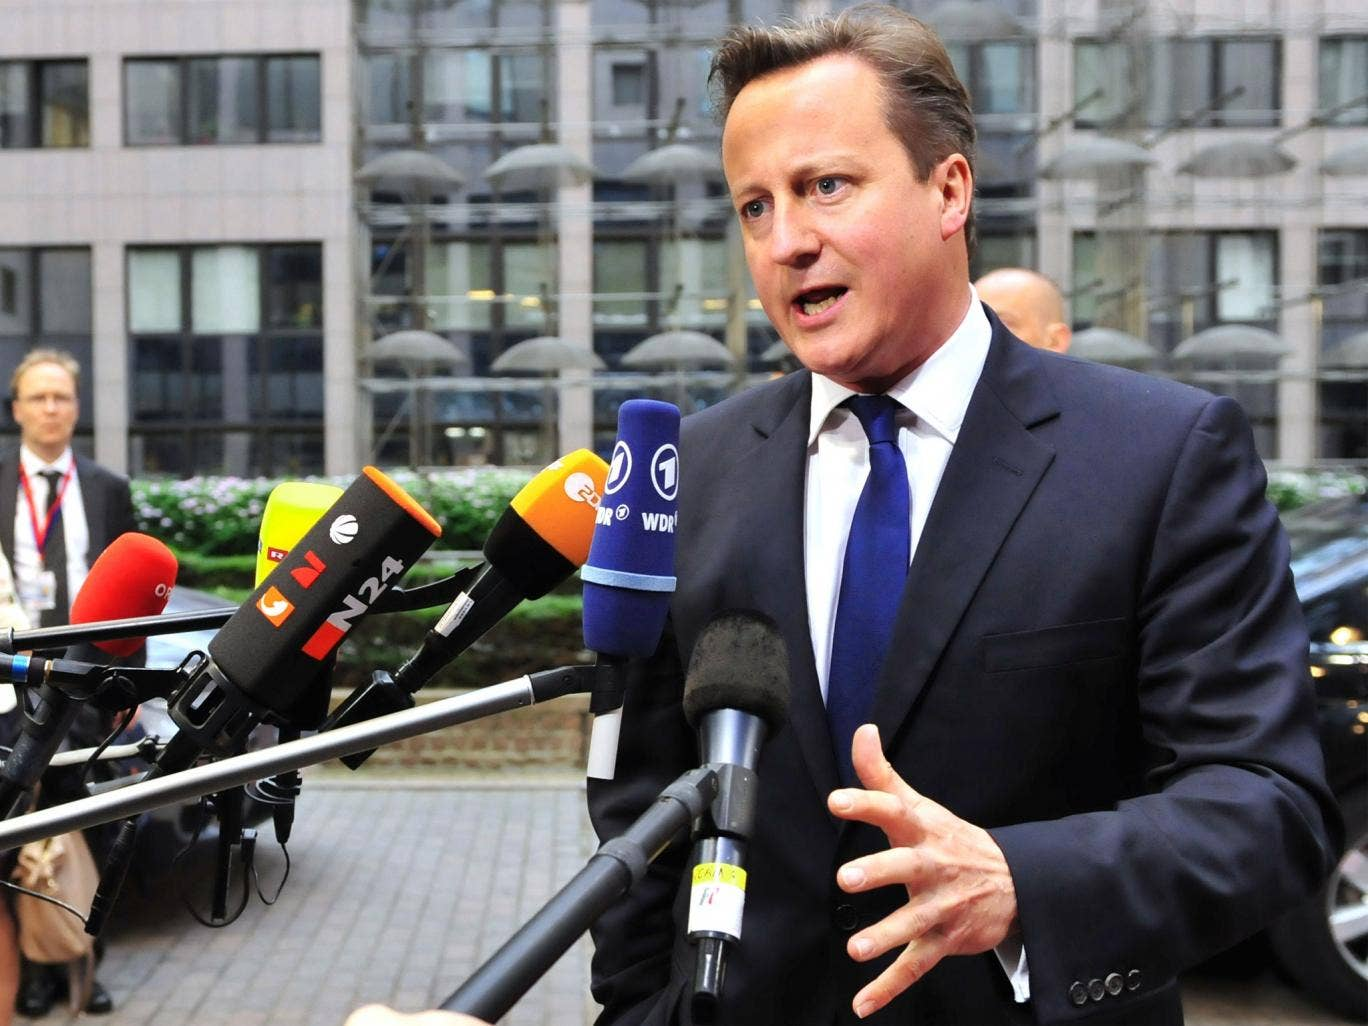 Prime Minister Cameron speaks to media as he arrives in Brussels